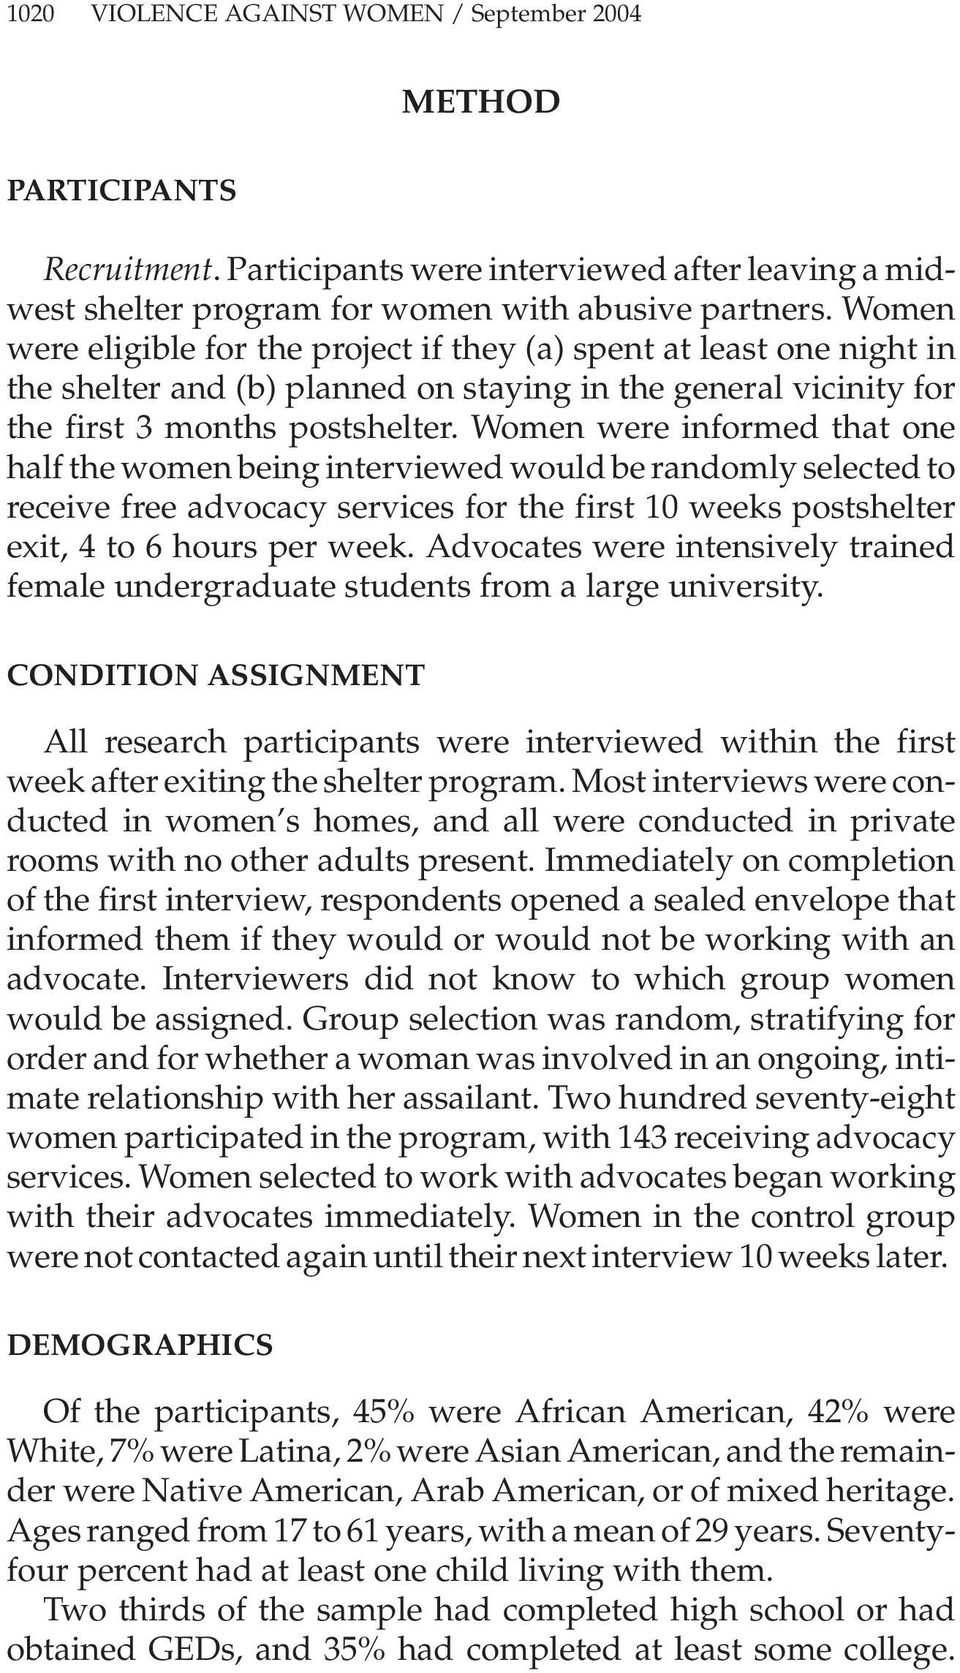 Women were informed that one half the women being interviewed would be randomly selected to receive free advocacy services for the first 10 weeks postshelter exit, 4 to 6 hours per week.